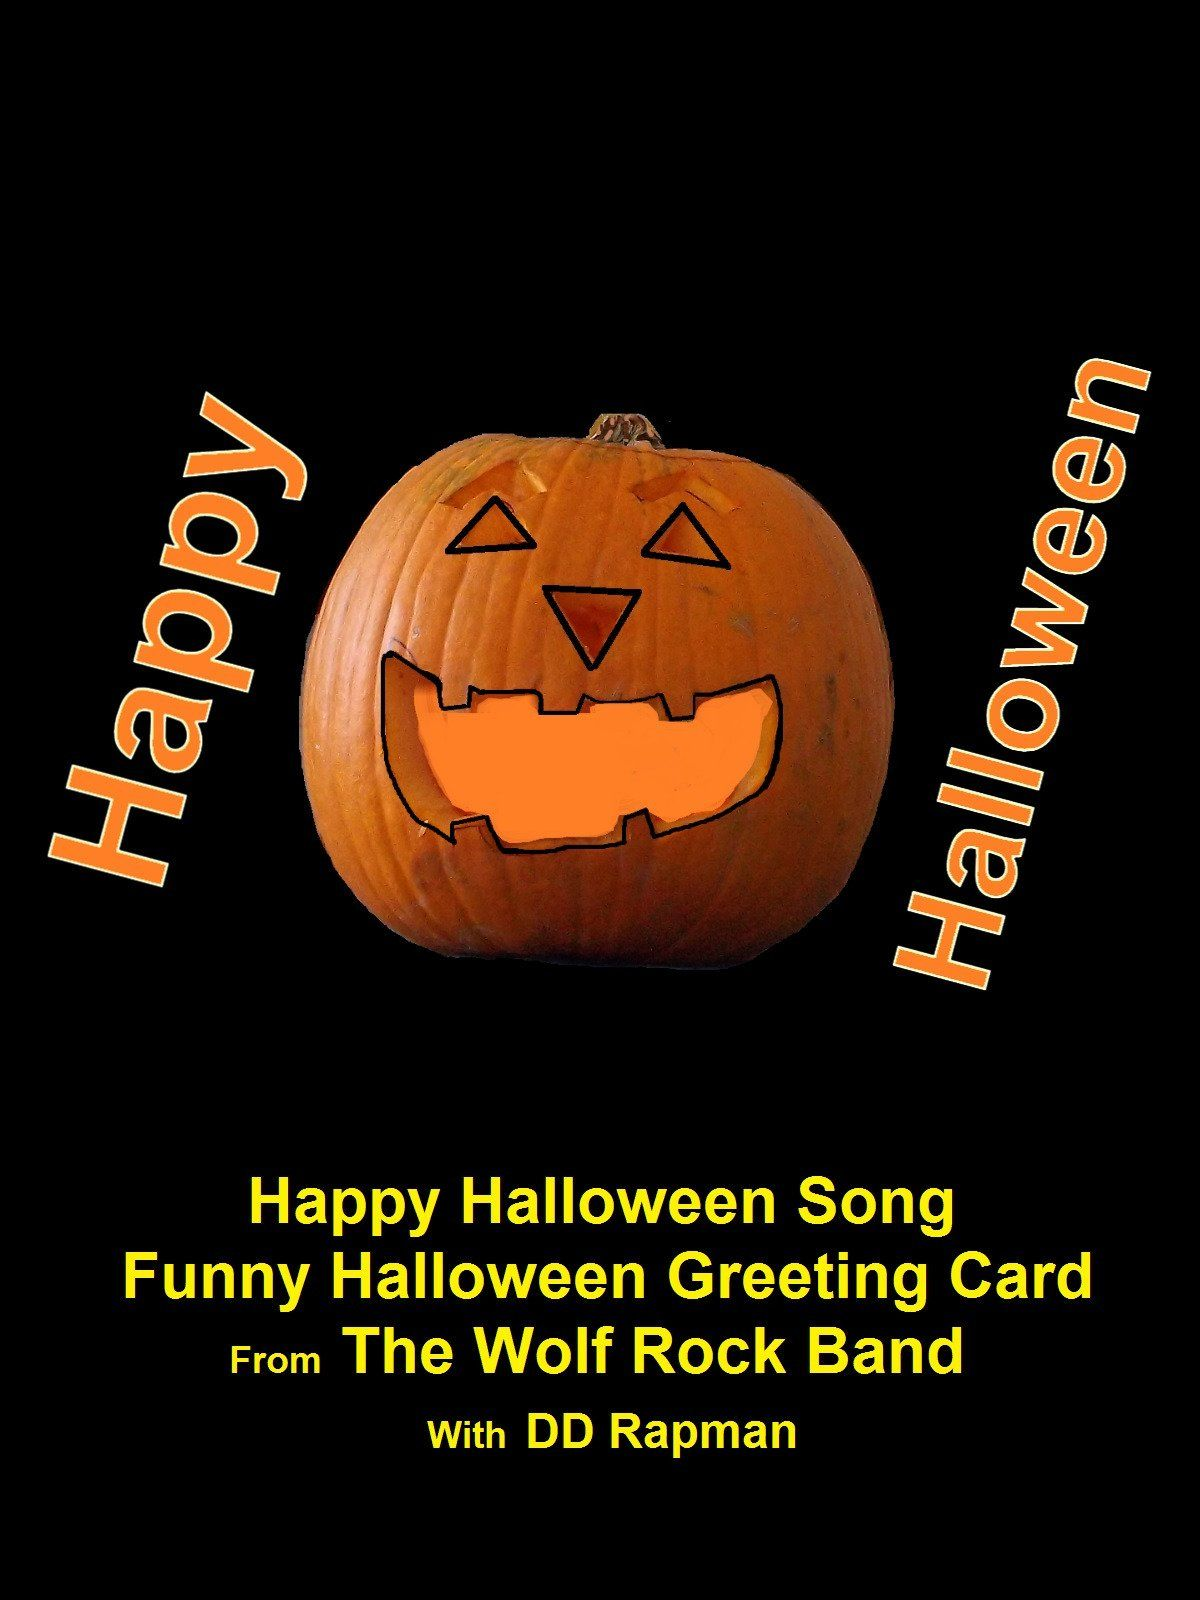 Happy Halloween Song Funny Halloween Greeting Card From